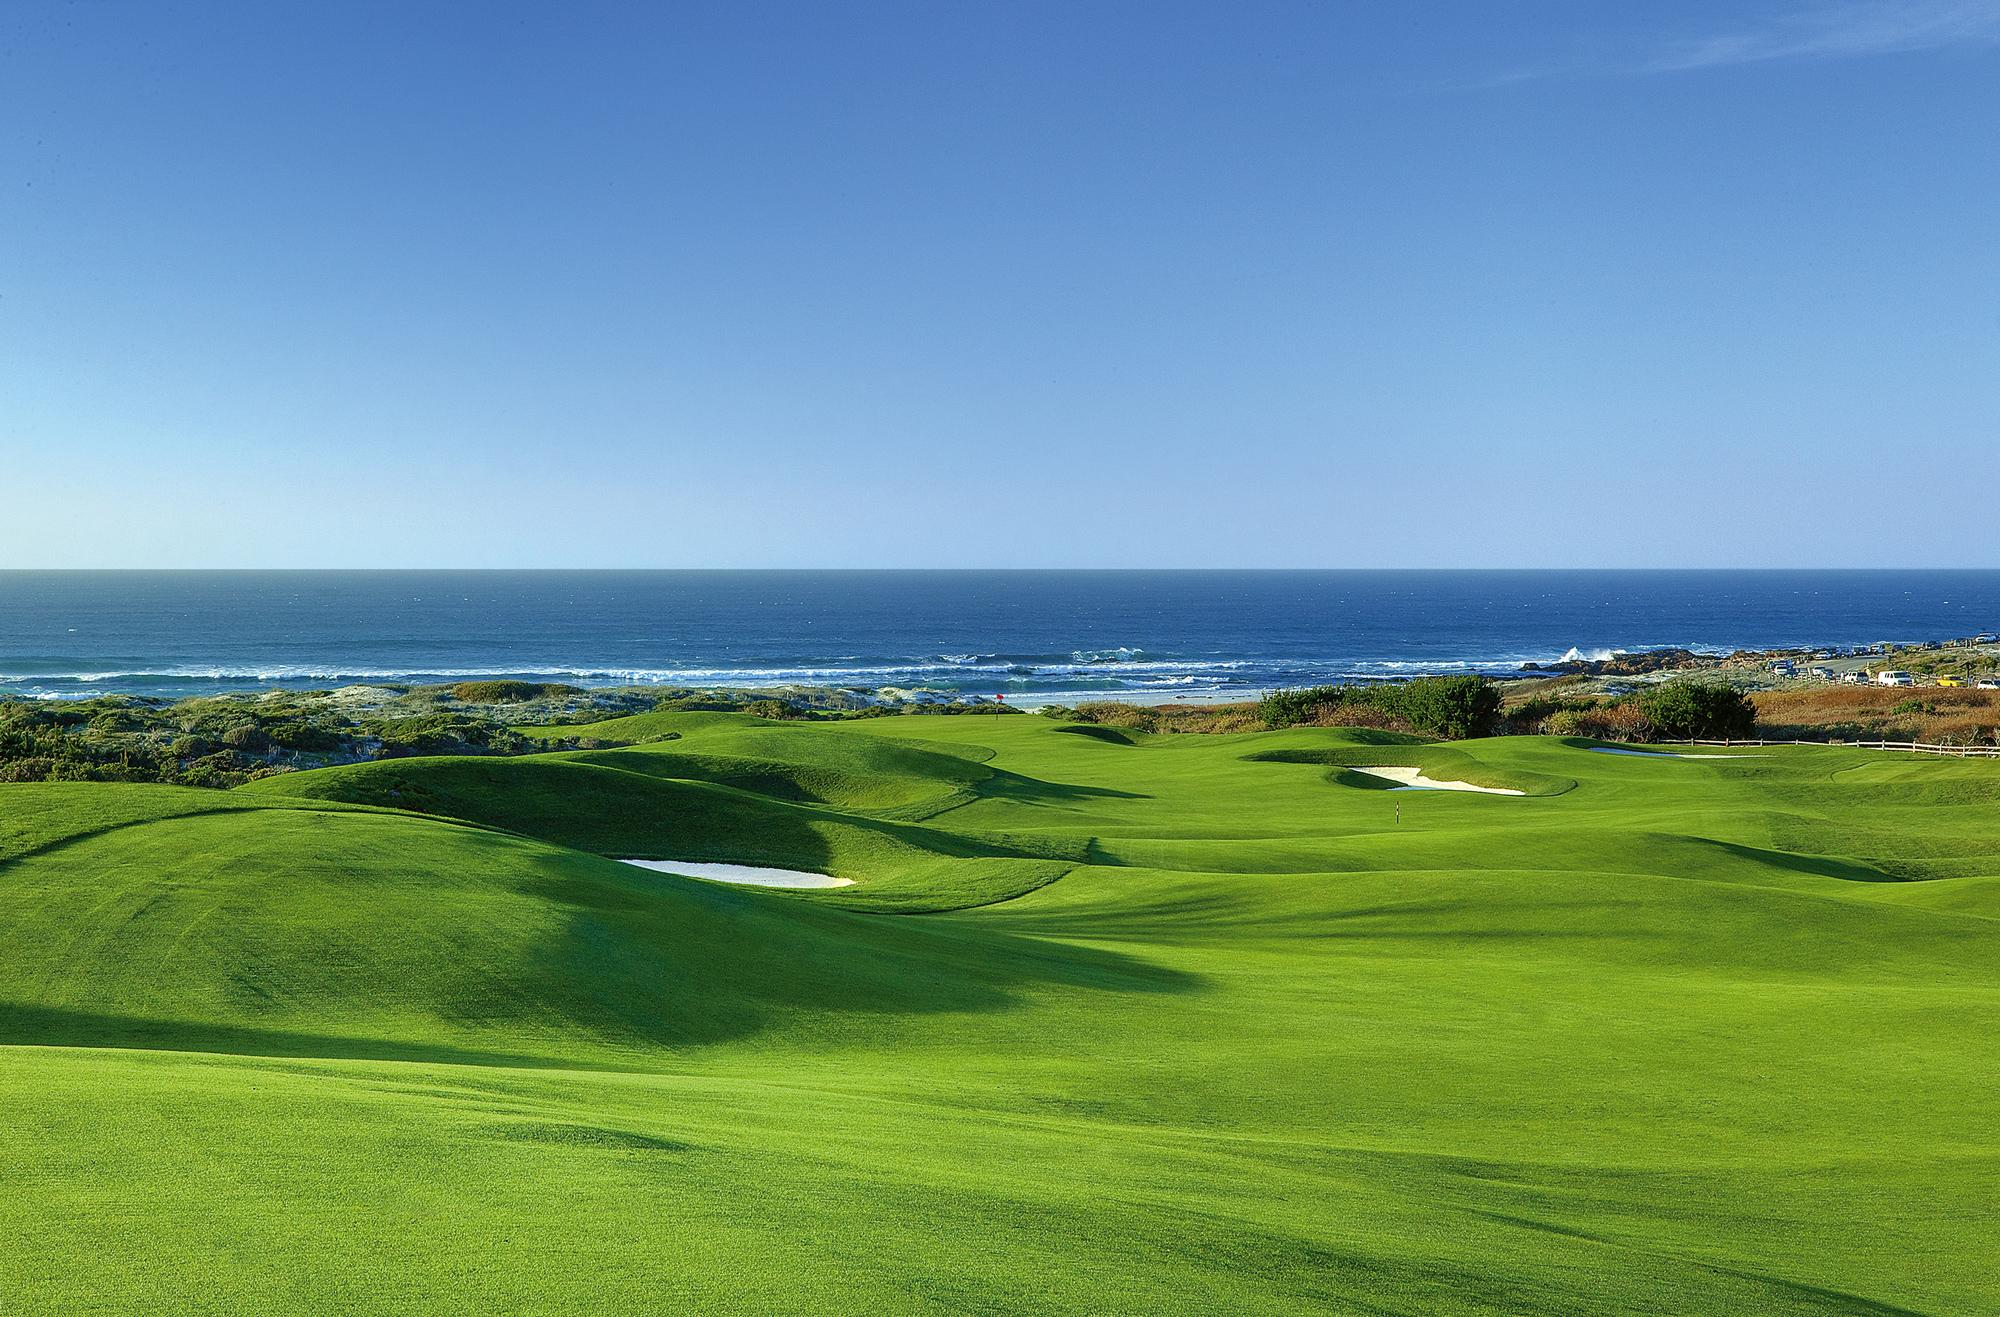 The Links at Spanish Bay offers several of the most desirable golf course within California